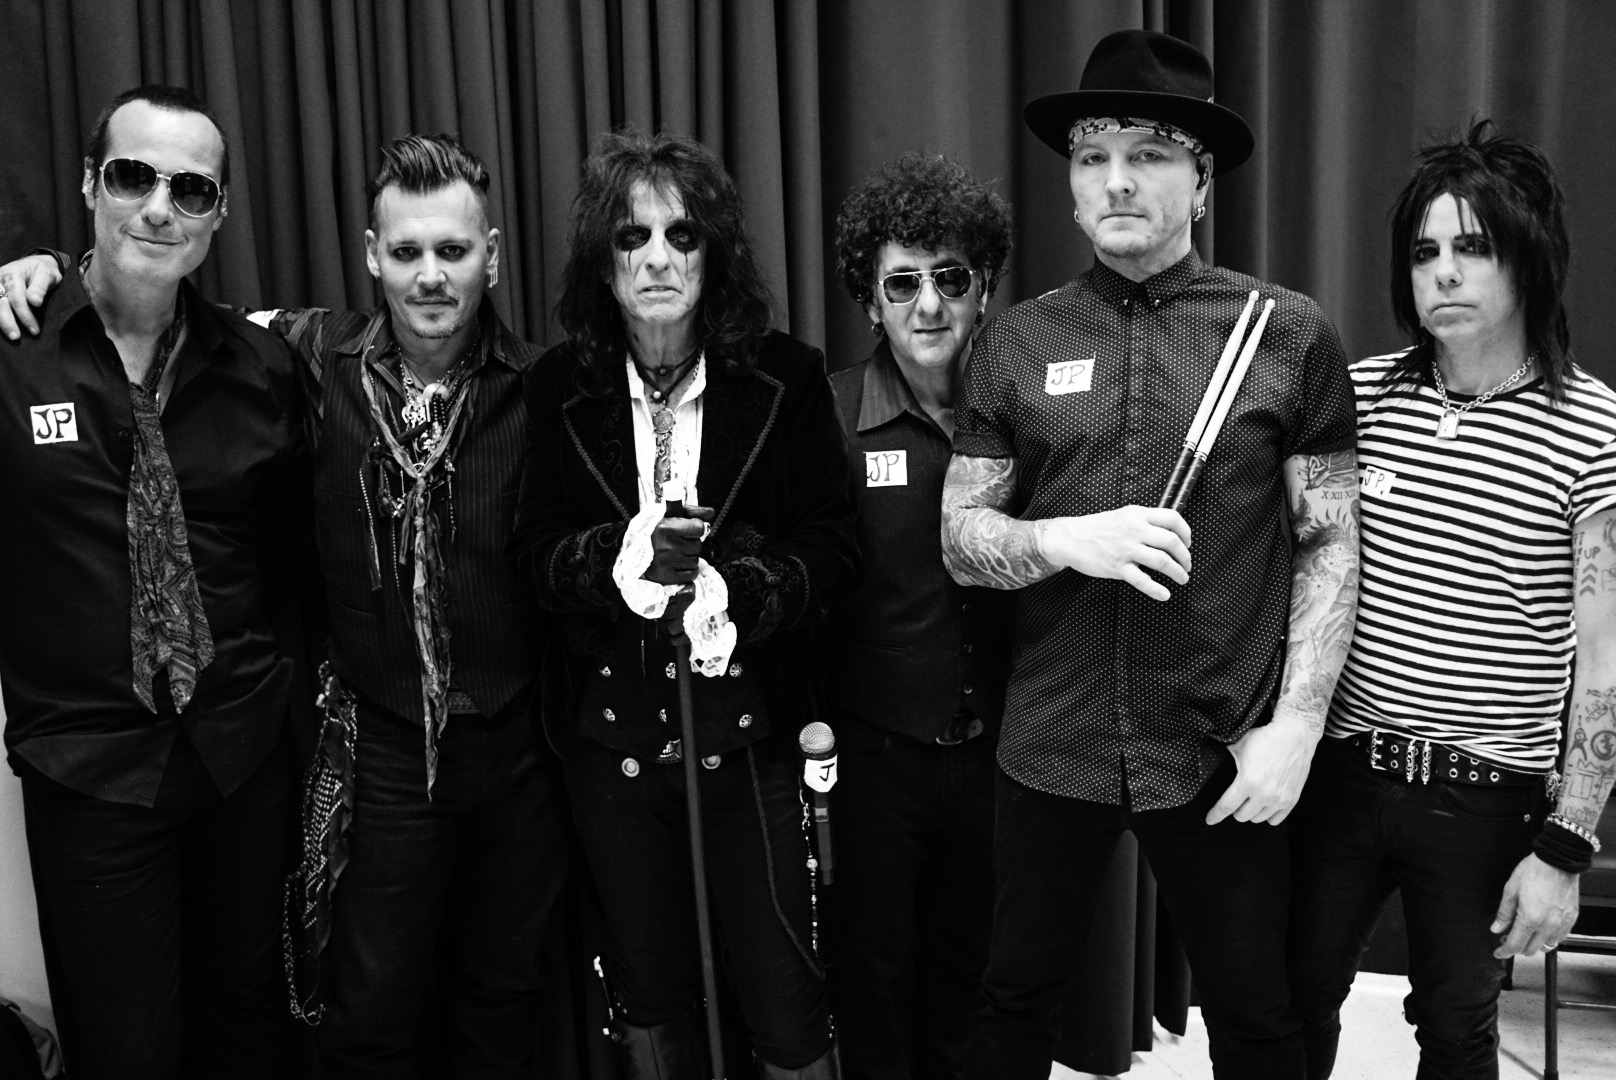 ¿Te imaginas una banda con Johnny Depp, Alice Cooper y Joe Perry? ¡Mejor escúchala!